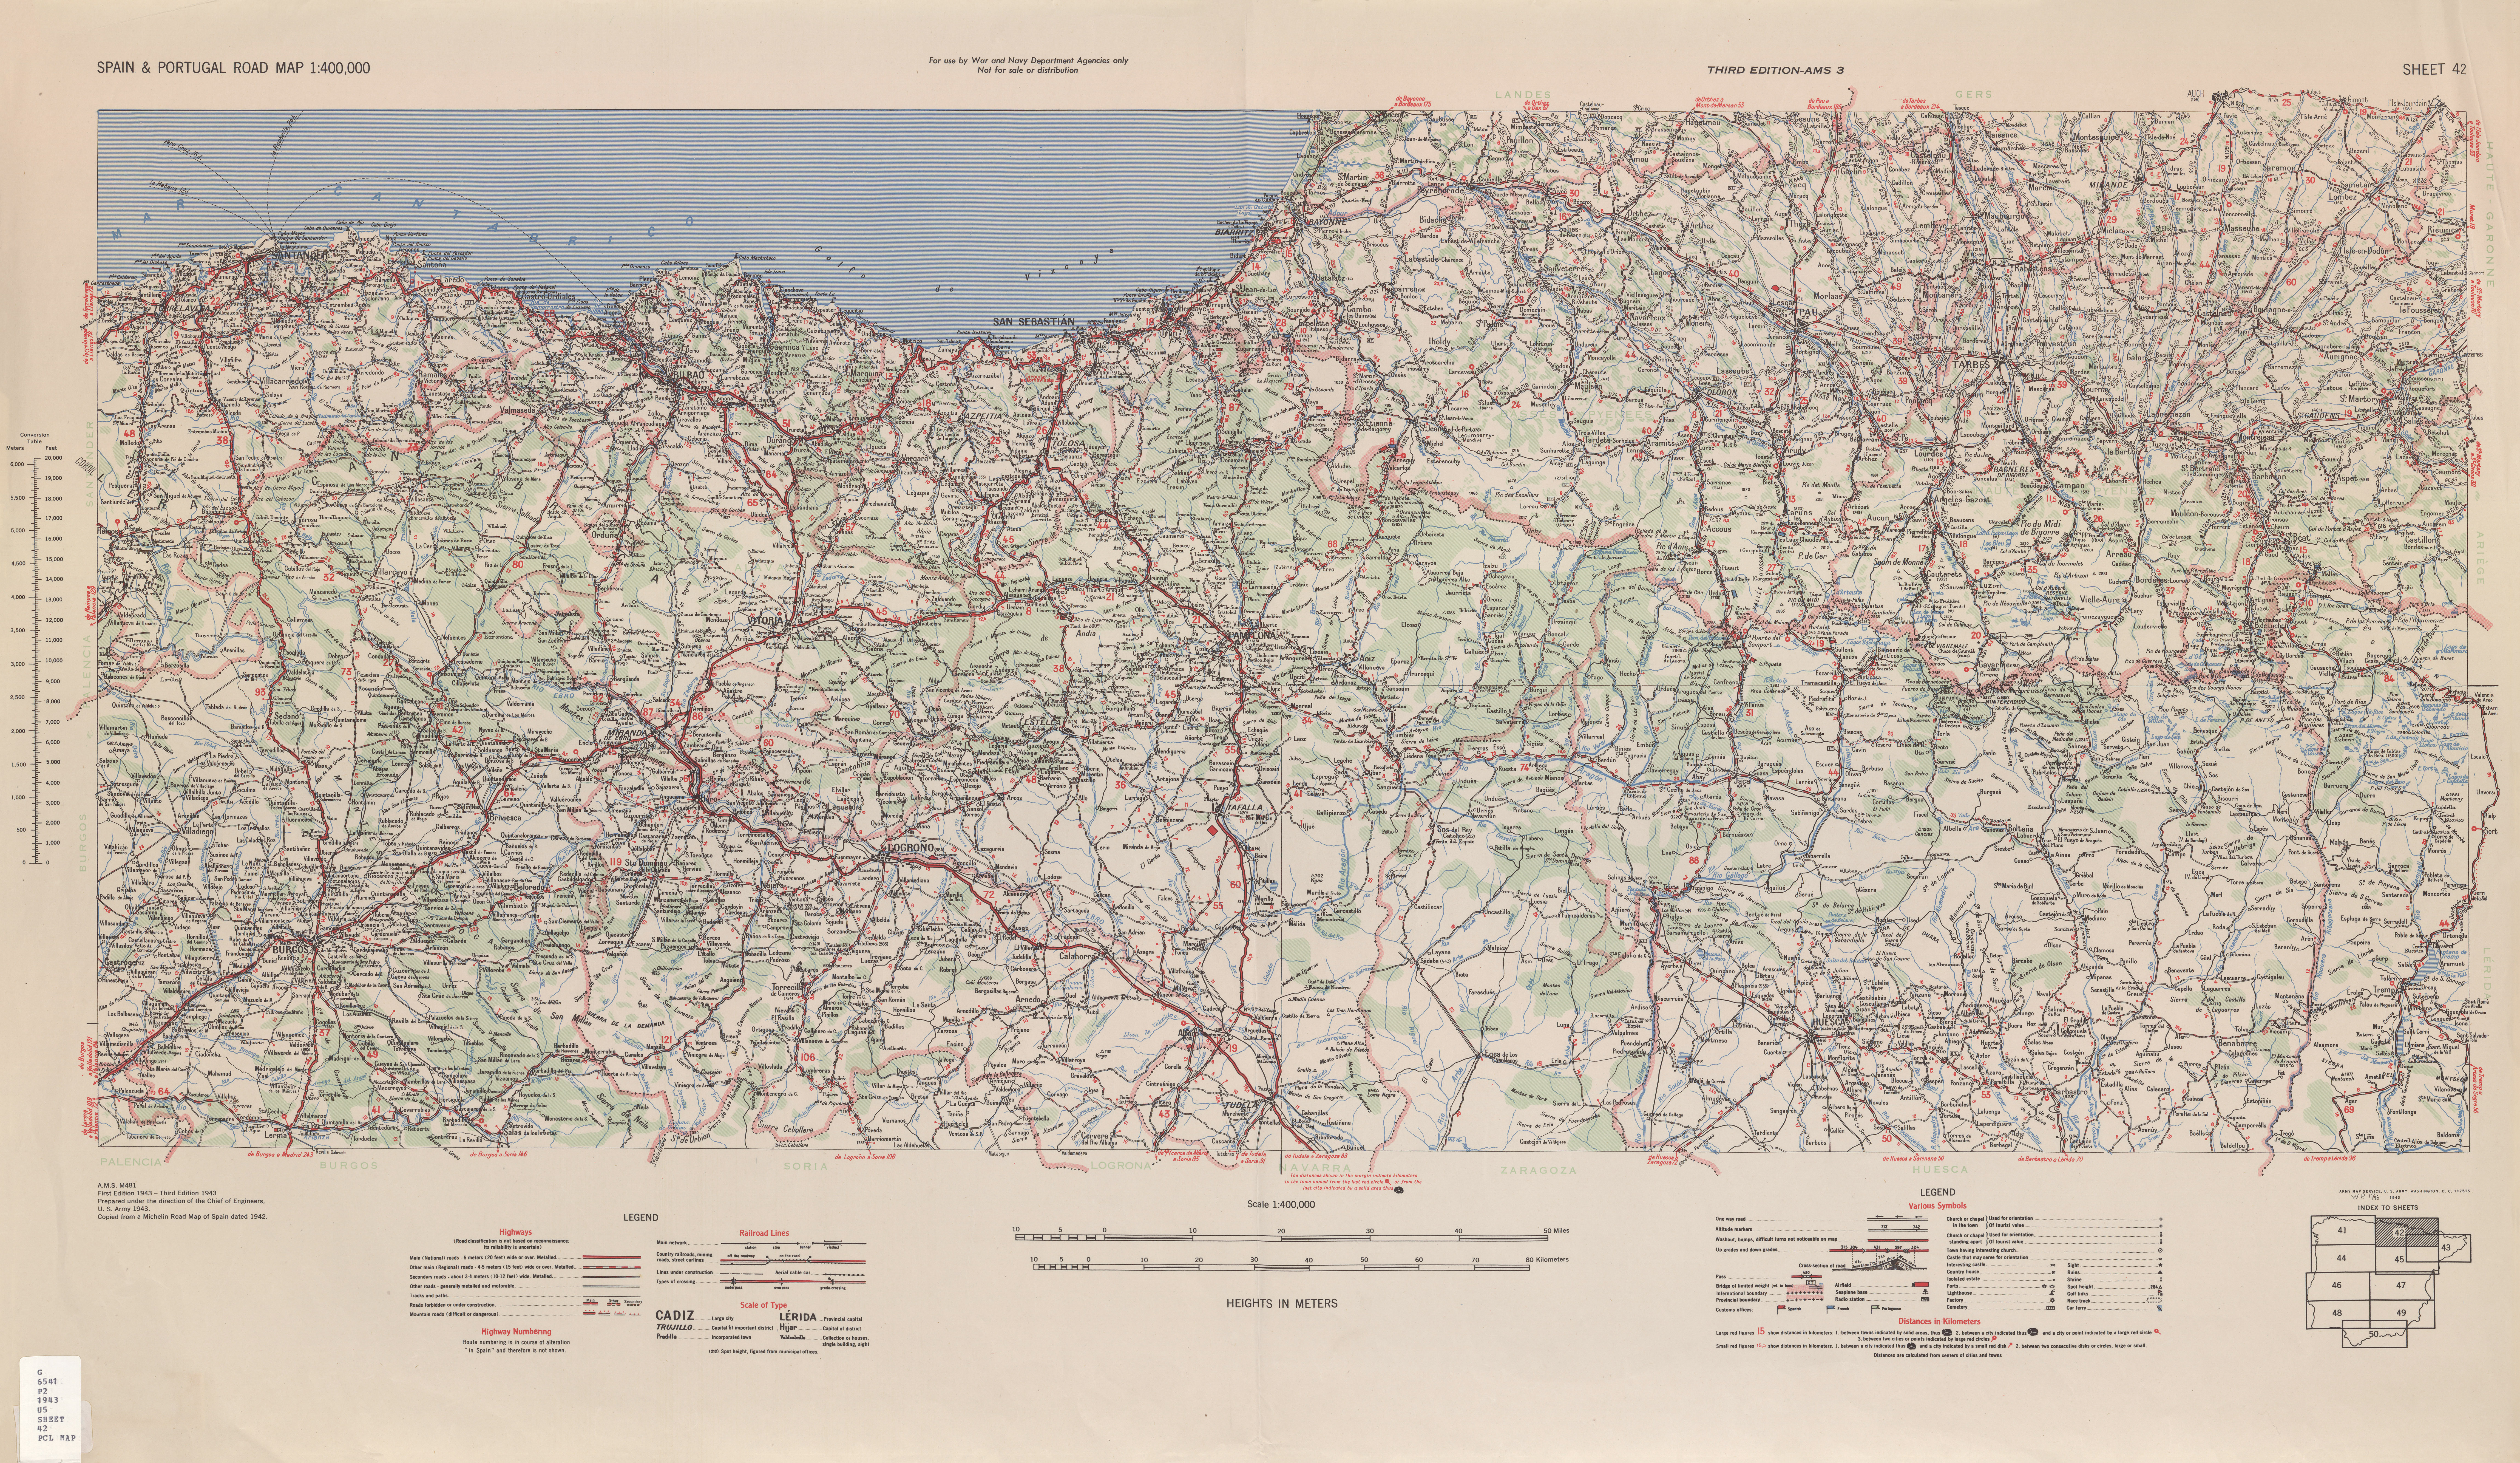 Map Of Spain 711.Spain Portugal Road Map Ams Topographic Maps Perry Castaa Eda